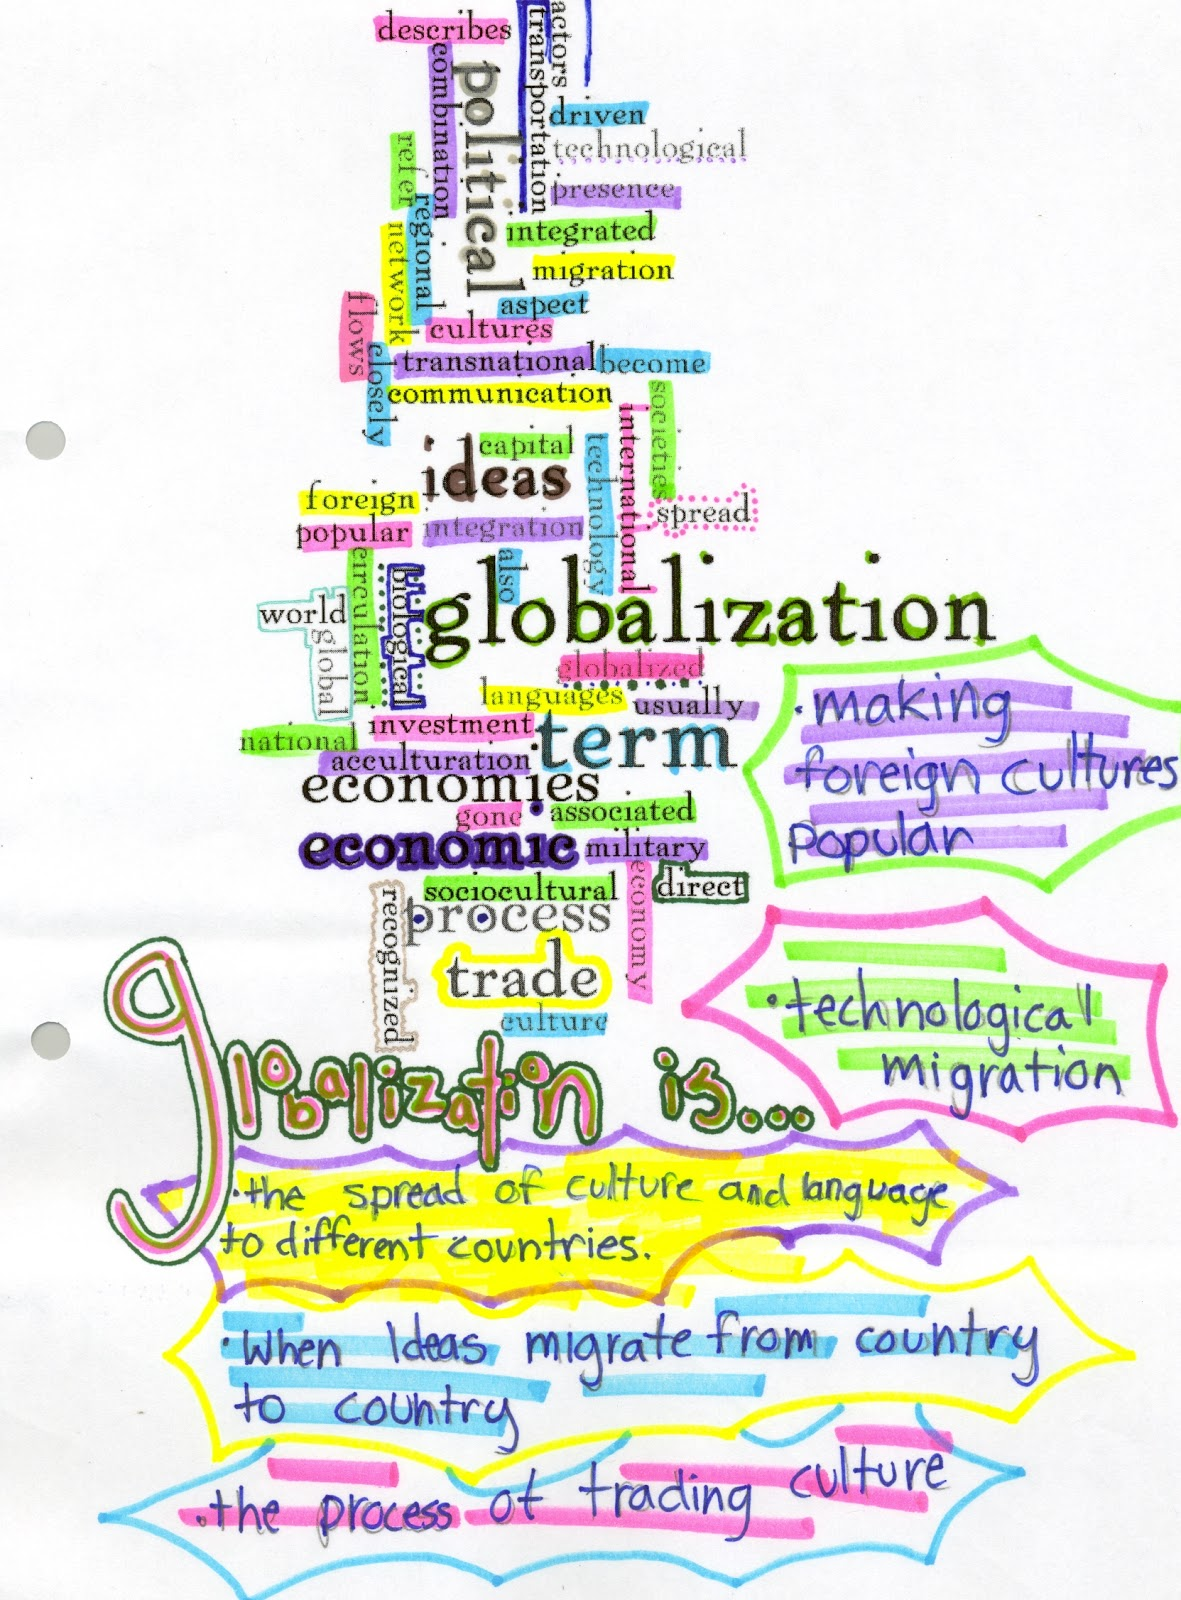 Globalization Definition Ap World History Globalization Definition. Globalization  Definition Ap World History   Globalization ...